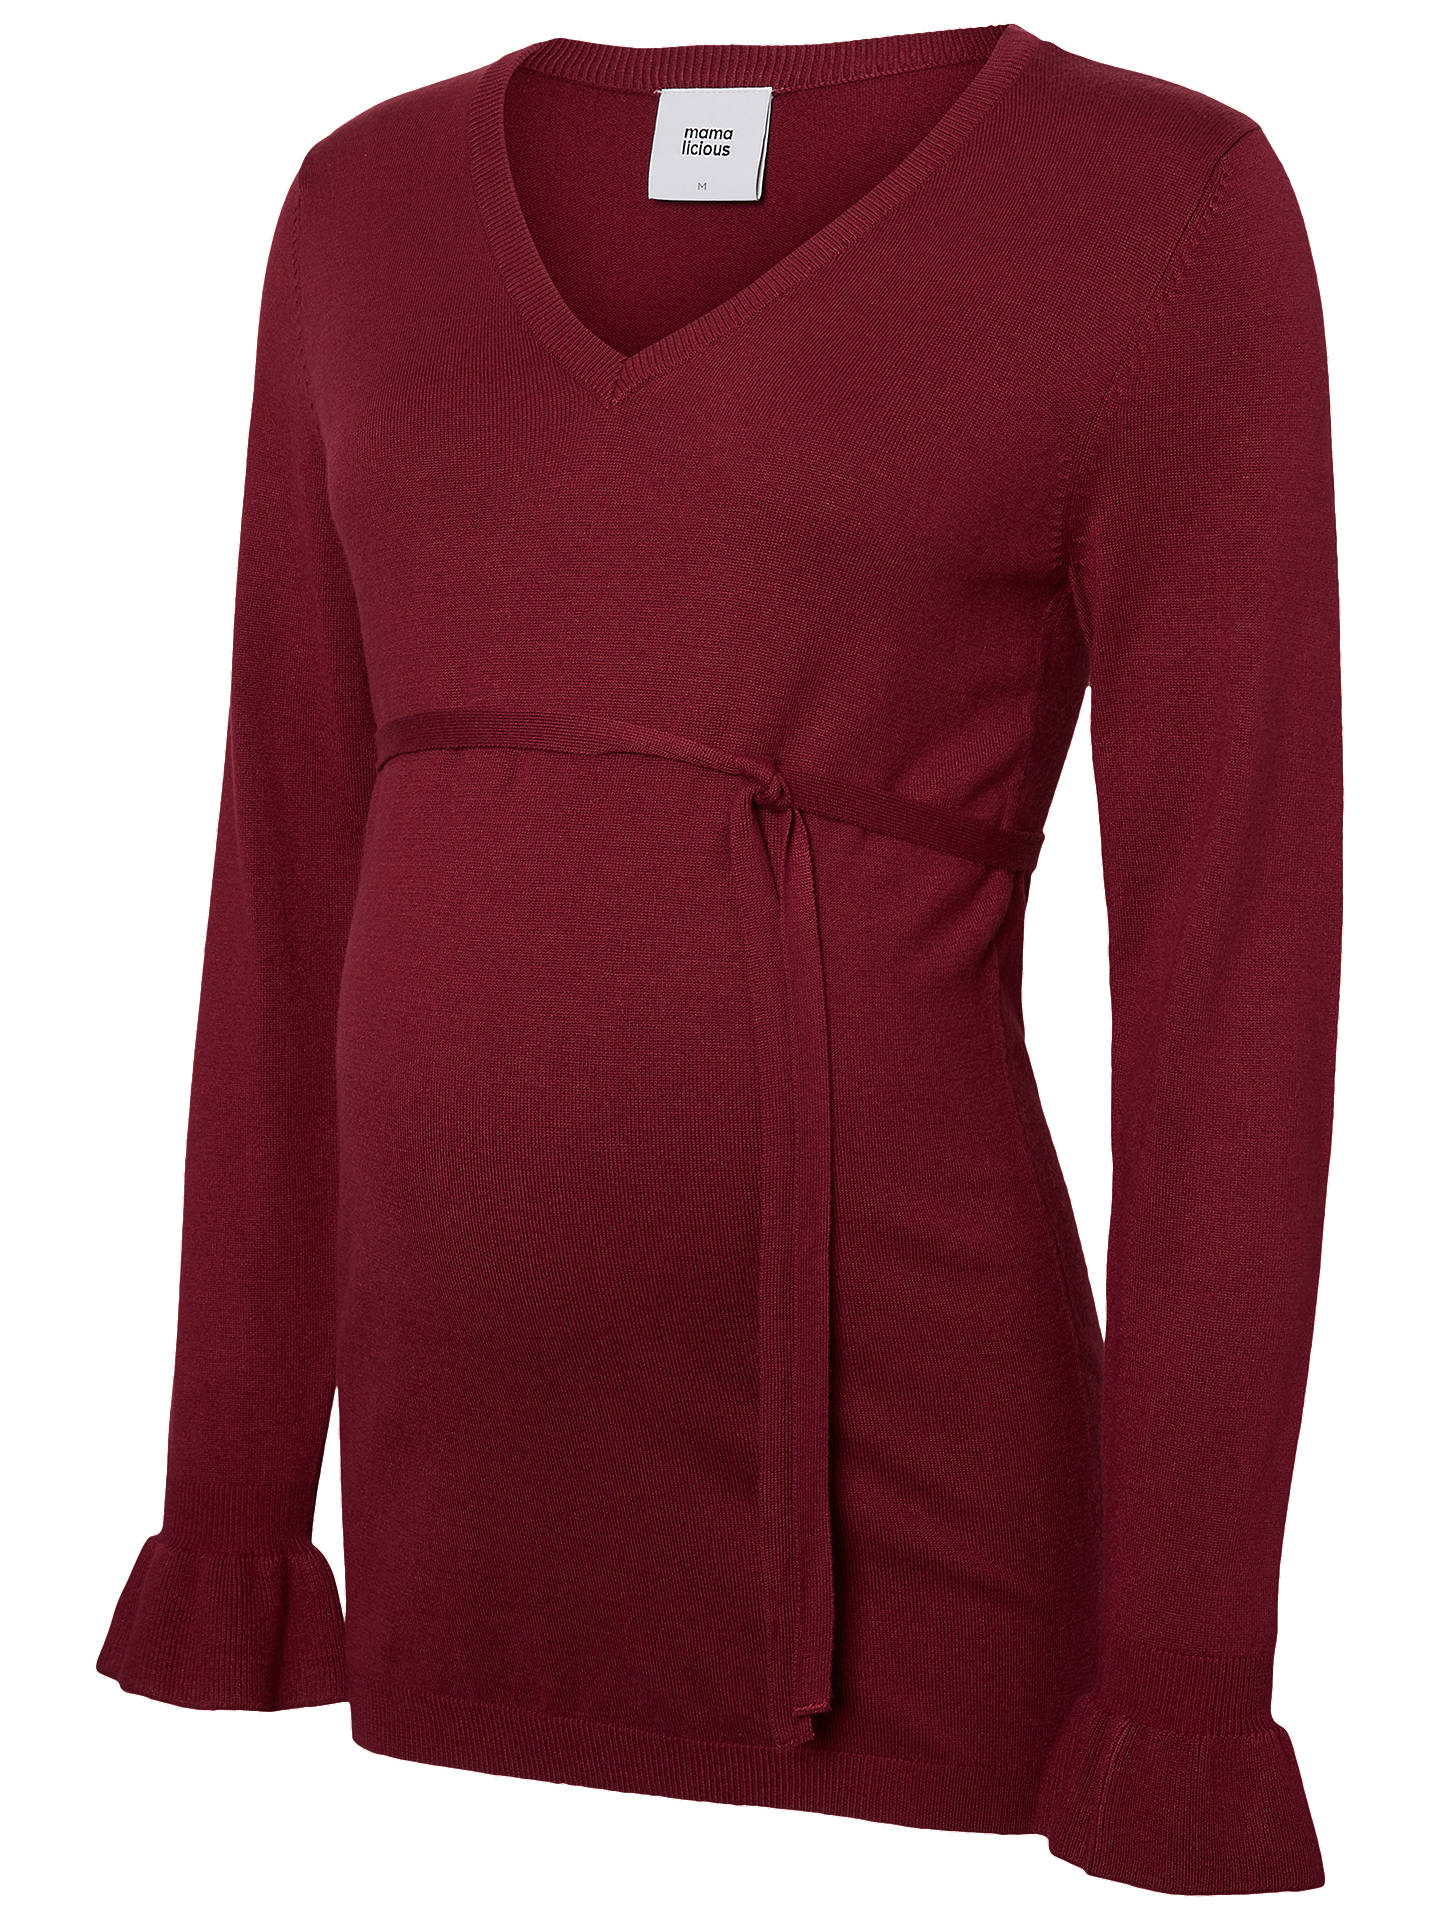 8faa37d6e0be9 ... Buy Mamalicious Tie Waist Knit Maternity Blouse, Red, S Online at  johnlewis.com ...